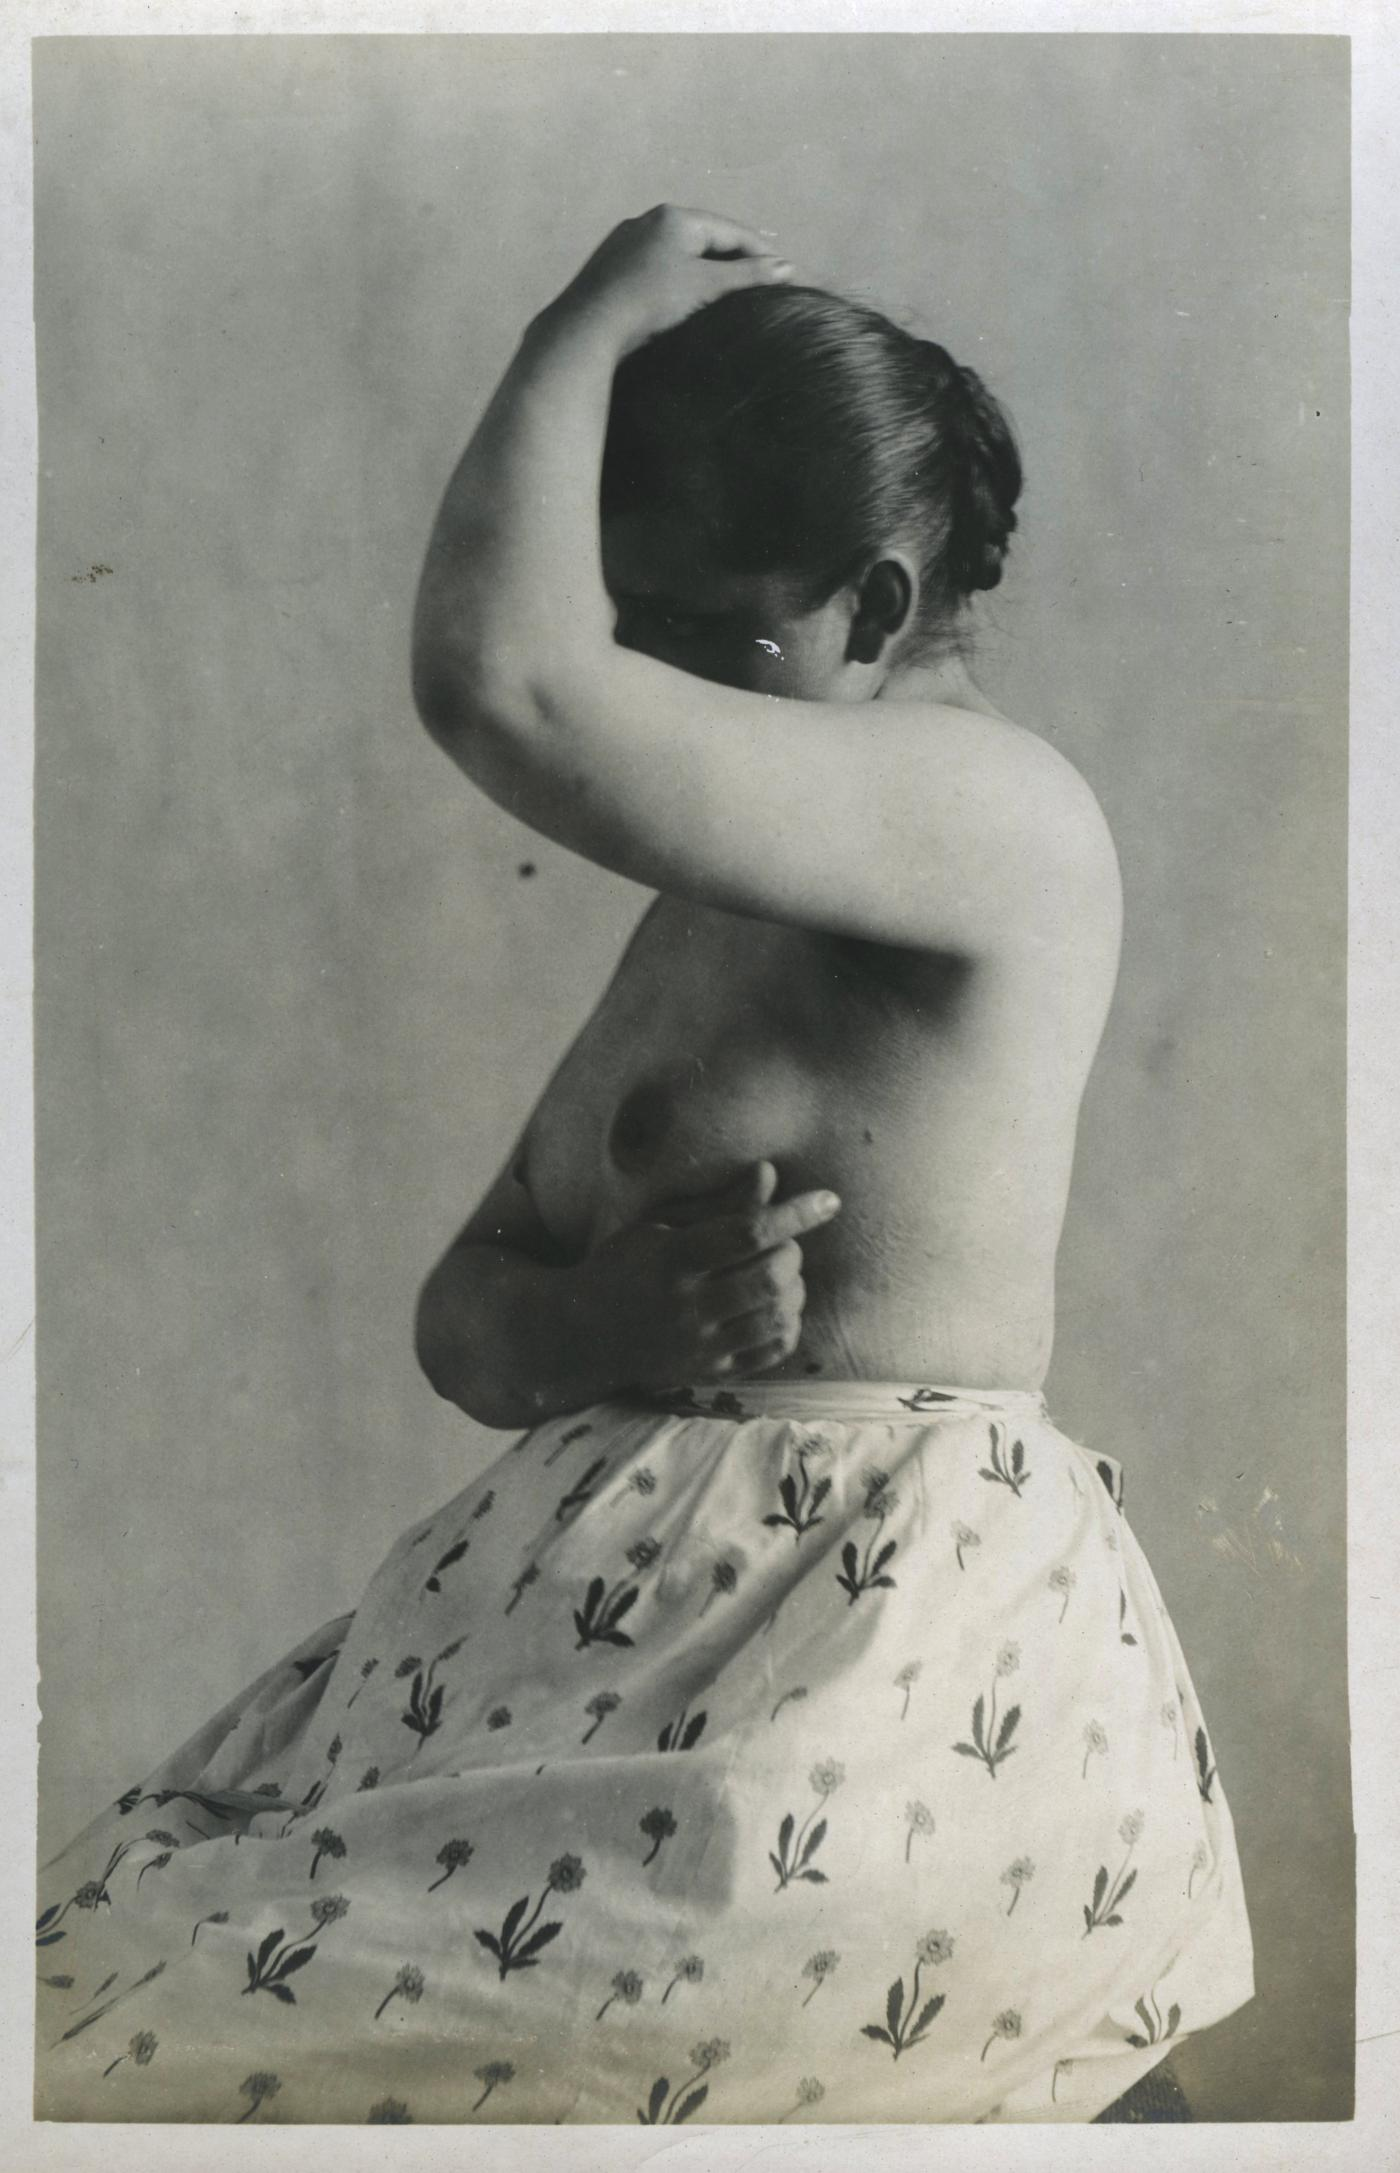 antique photograph of a topless woman in the 1890s